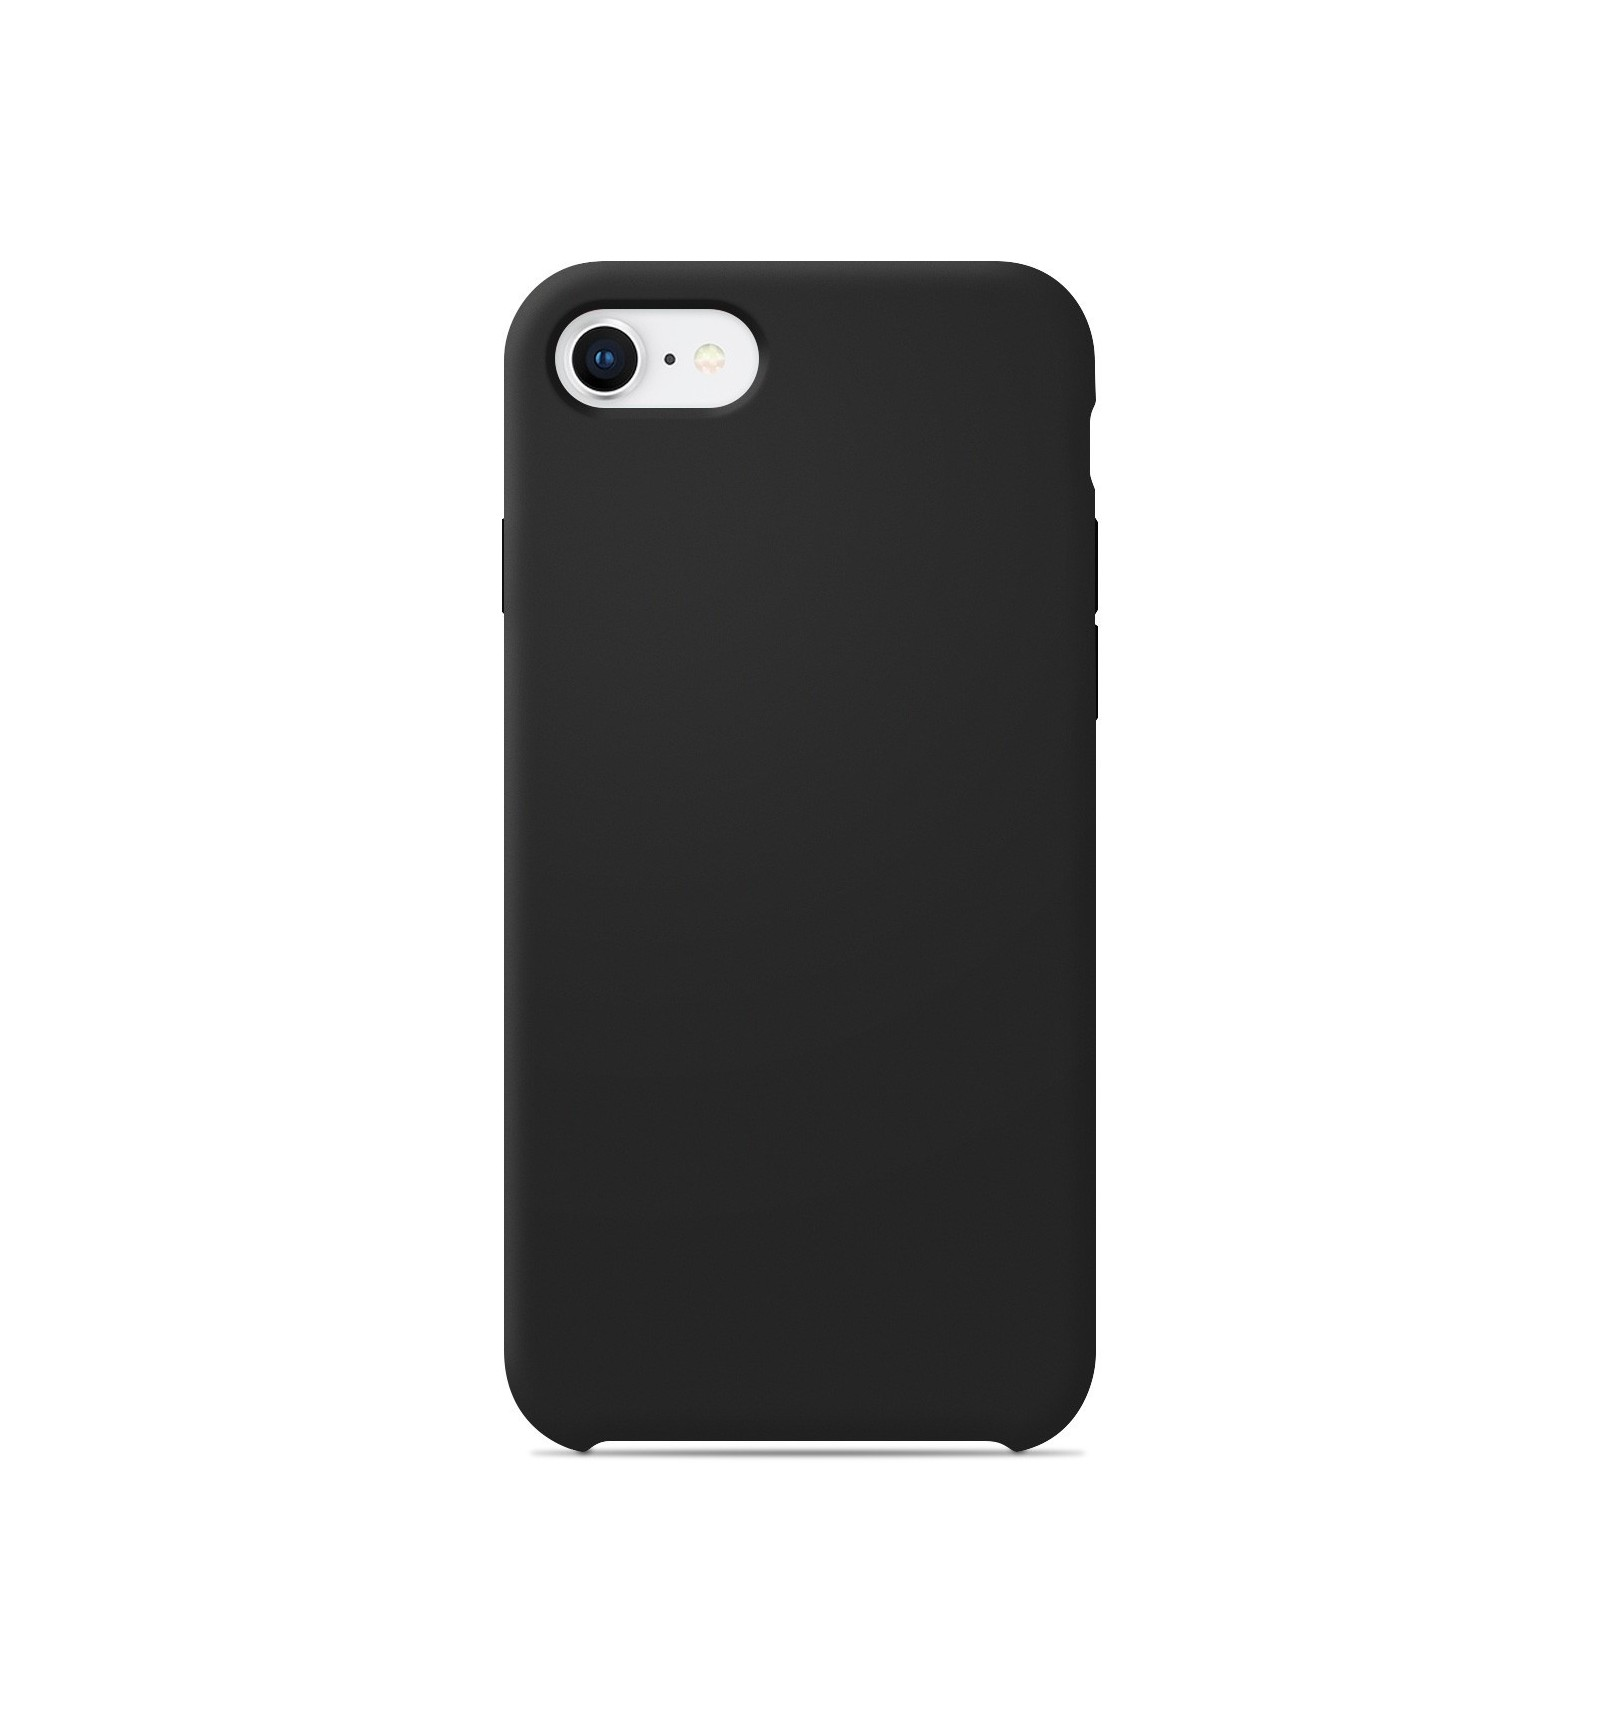 Coque Apple iPhone 7 Plus Silicone Soft Touch - Noir